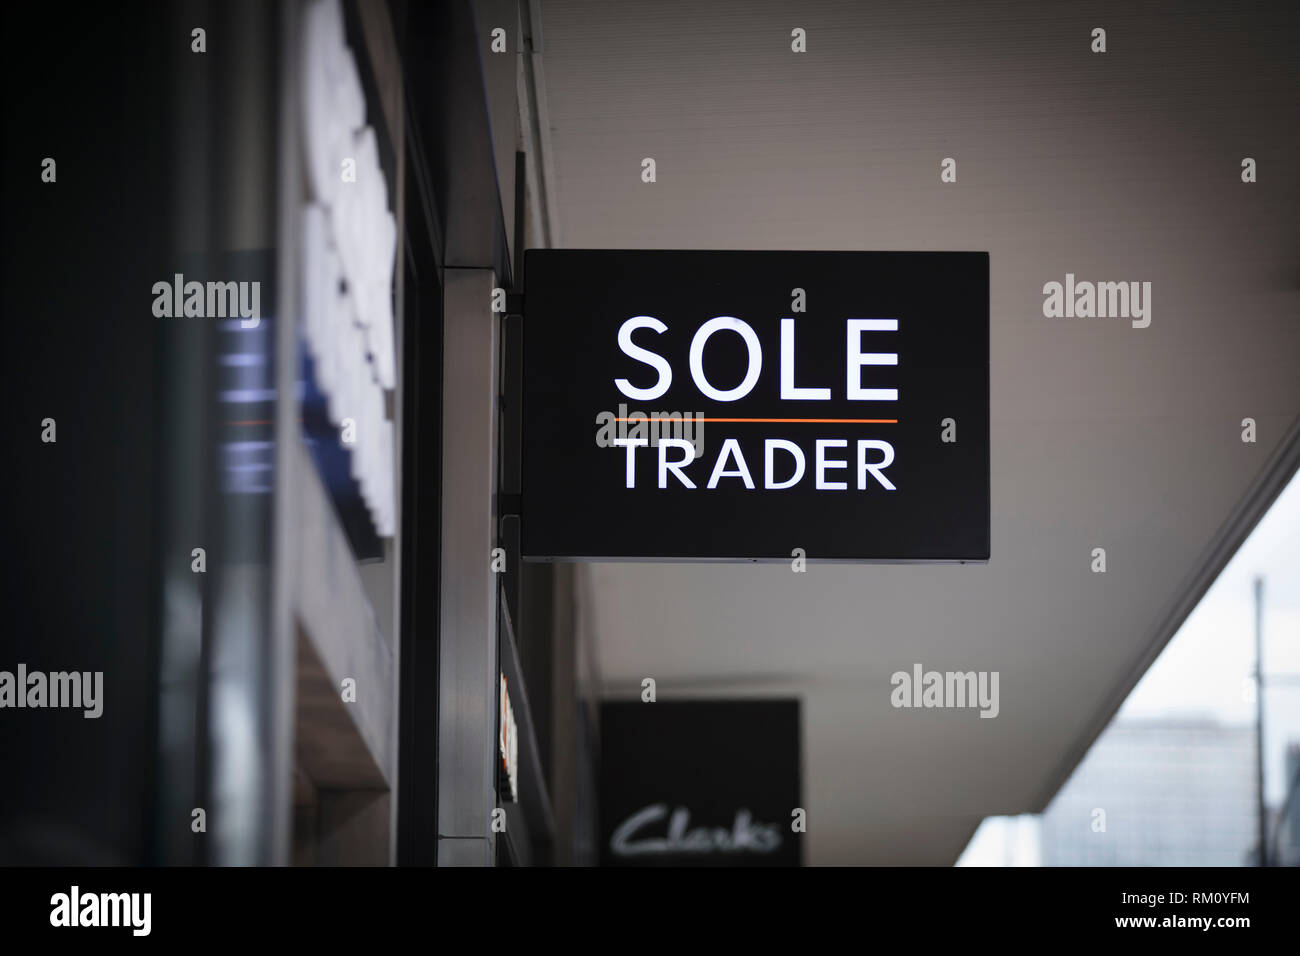 London, Greater London, United Kingdom, 7th February 2018, A sign and logo for sole trader store - Stock Image